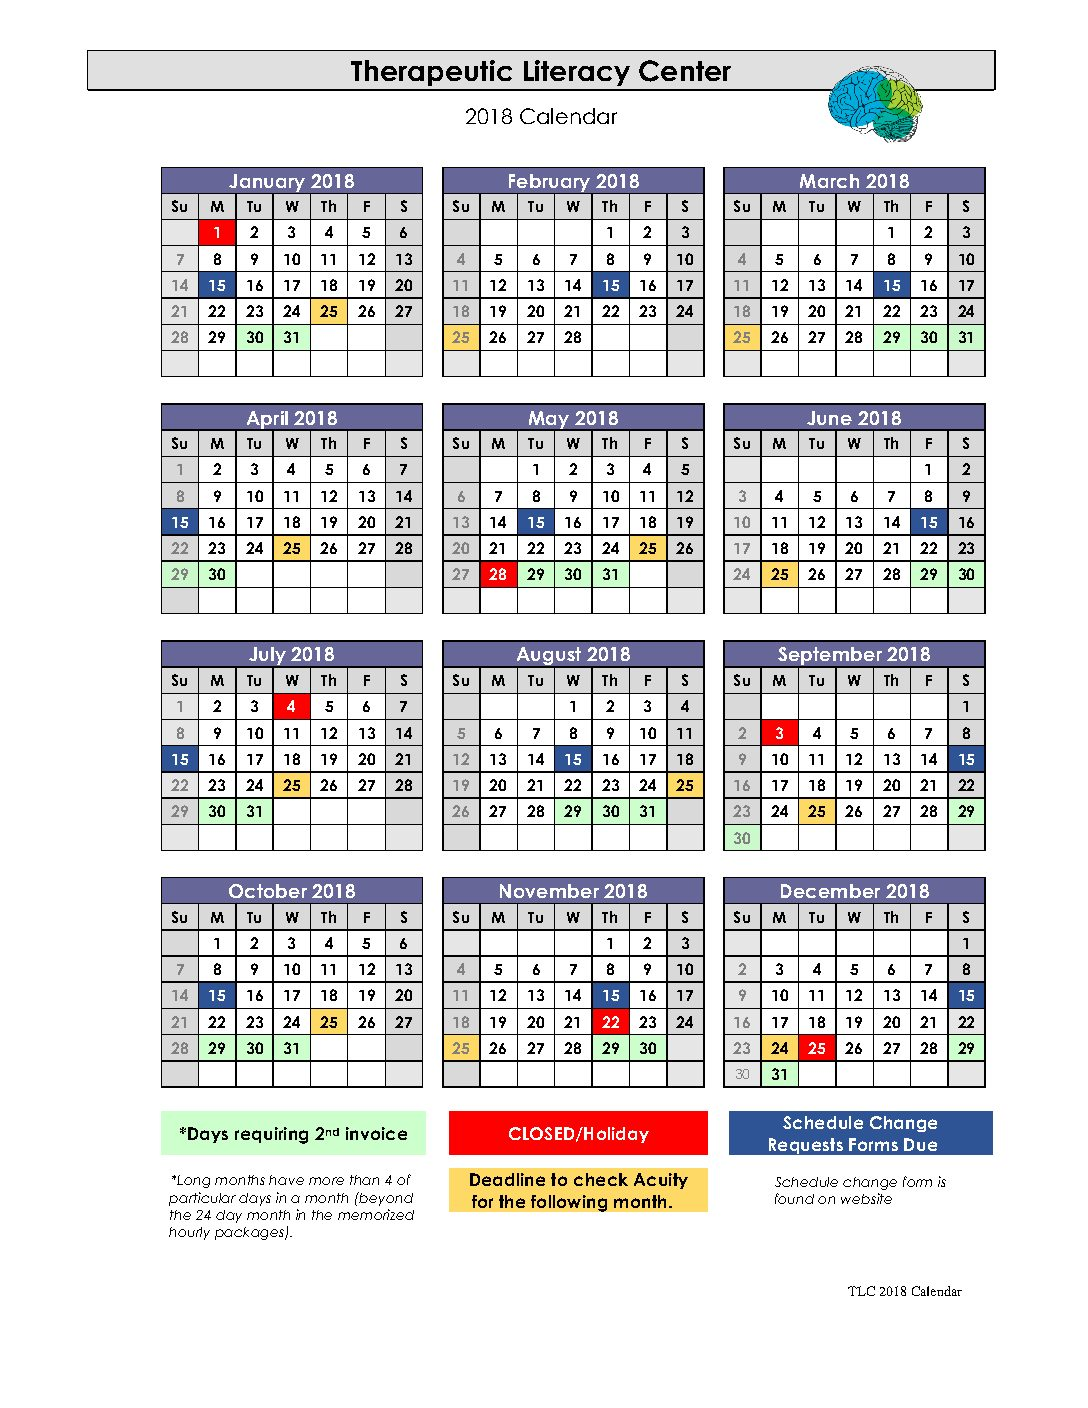 Therapeutic Literacy Center 2018 Calendar